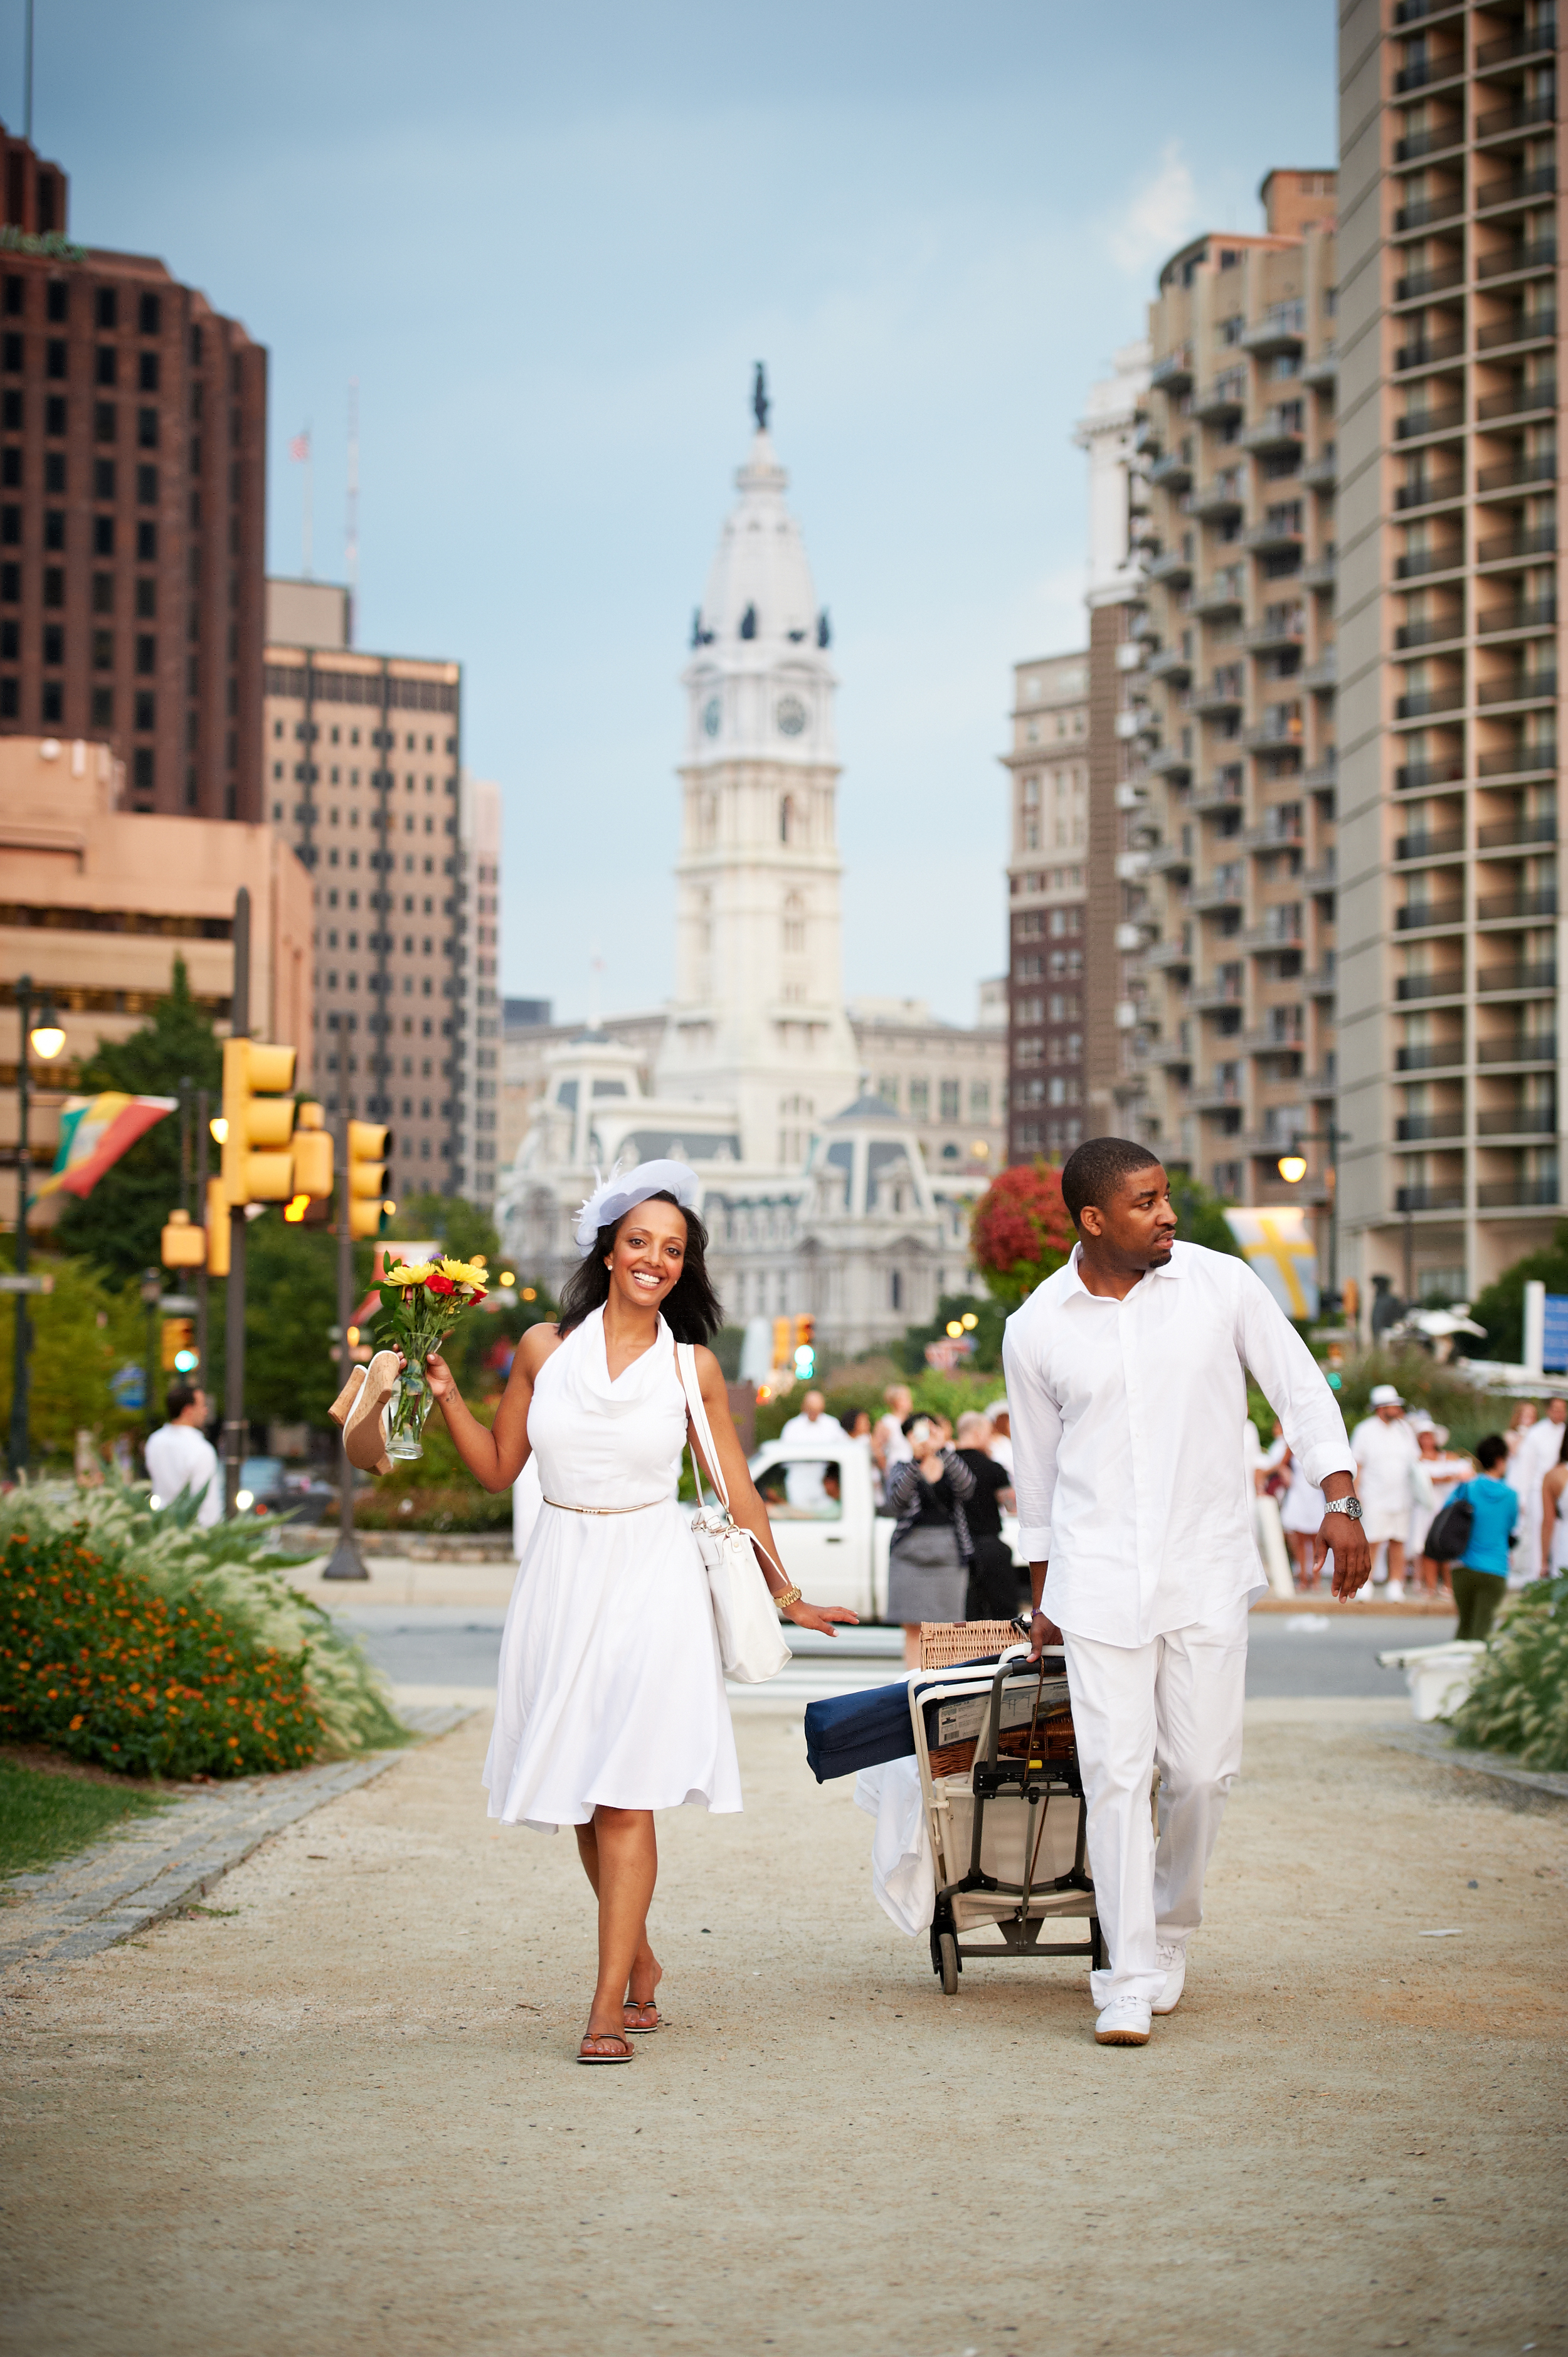 Diner_an_Blanc_Philadelphia_2012_forPRINT_117- walking with city hall in bkgd.jpg